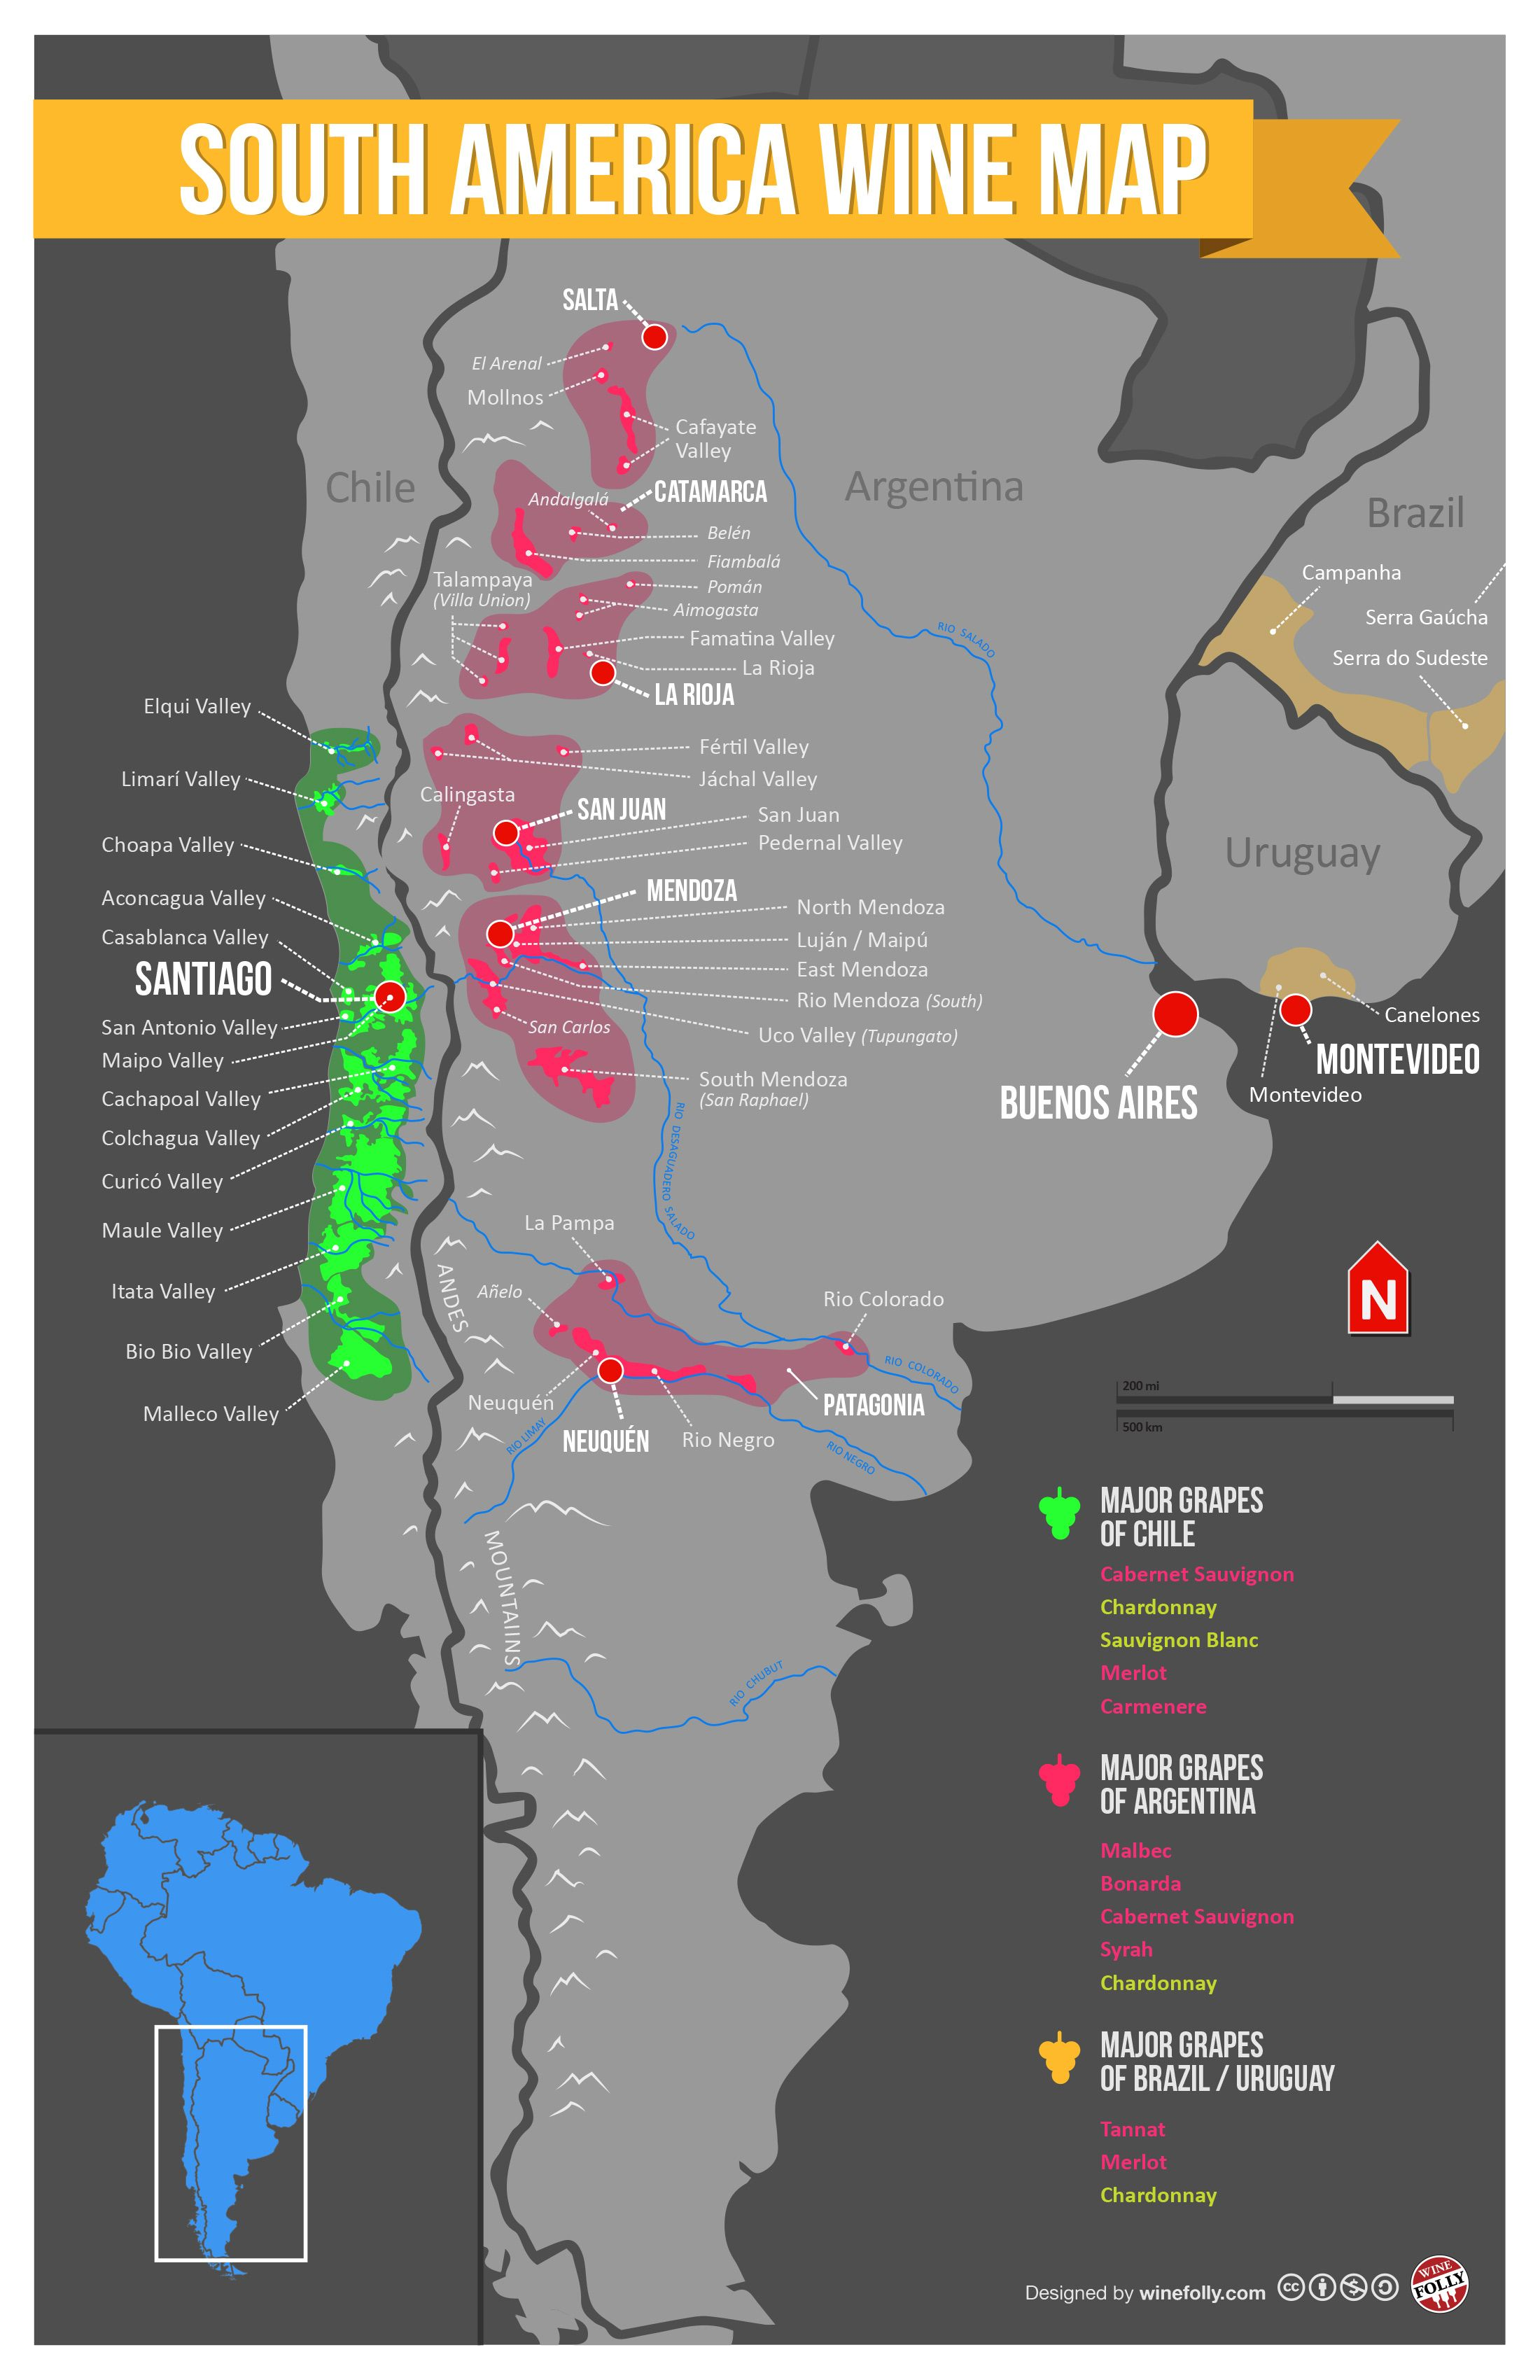 South america wine region map wine pinterest south america pinning fun wine region maps around the world south america wine regions map gumiabroncs Image collections